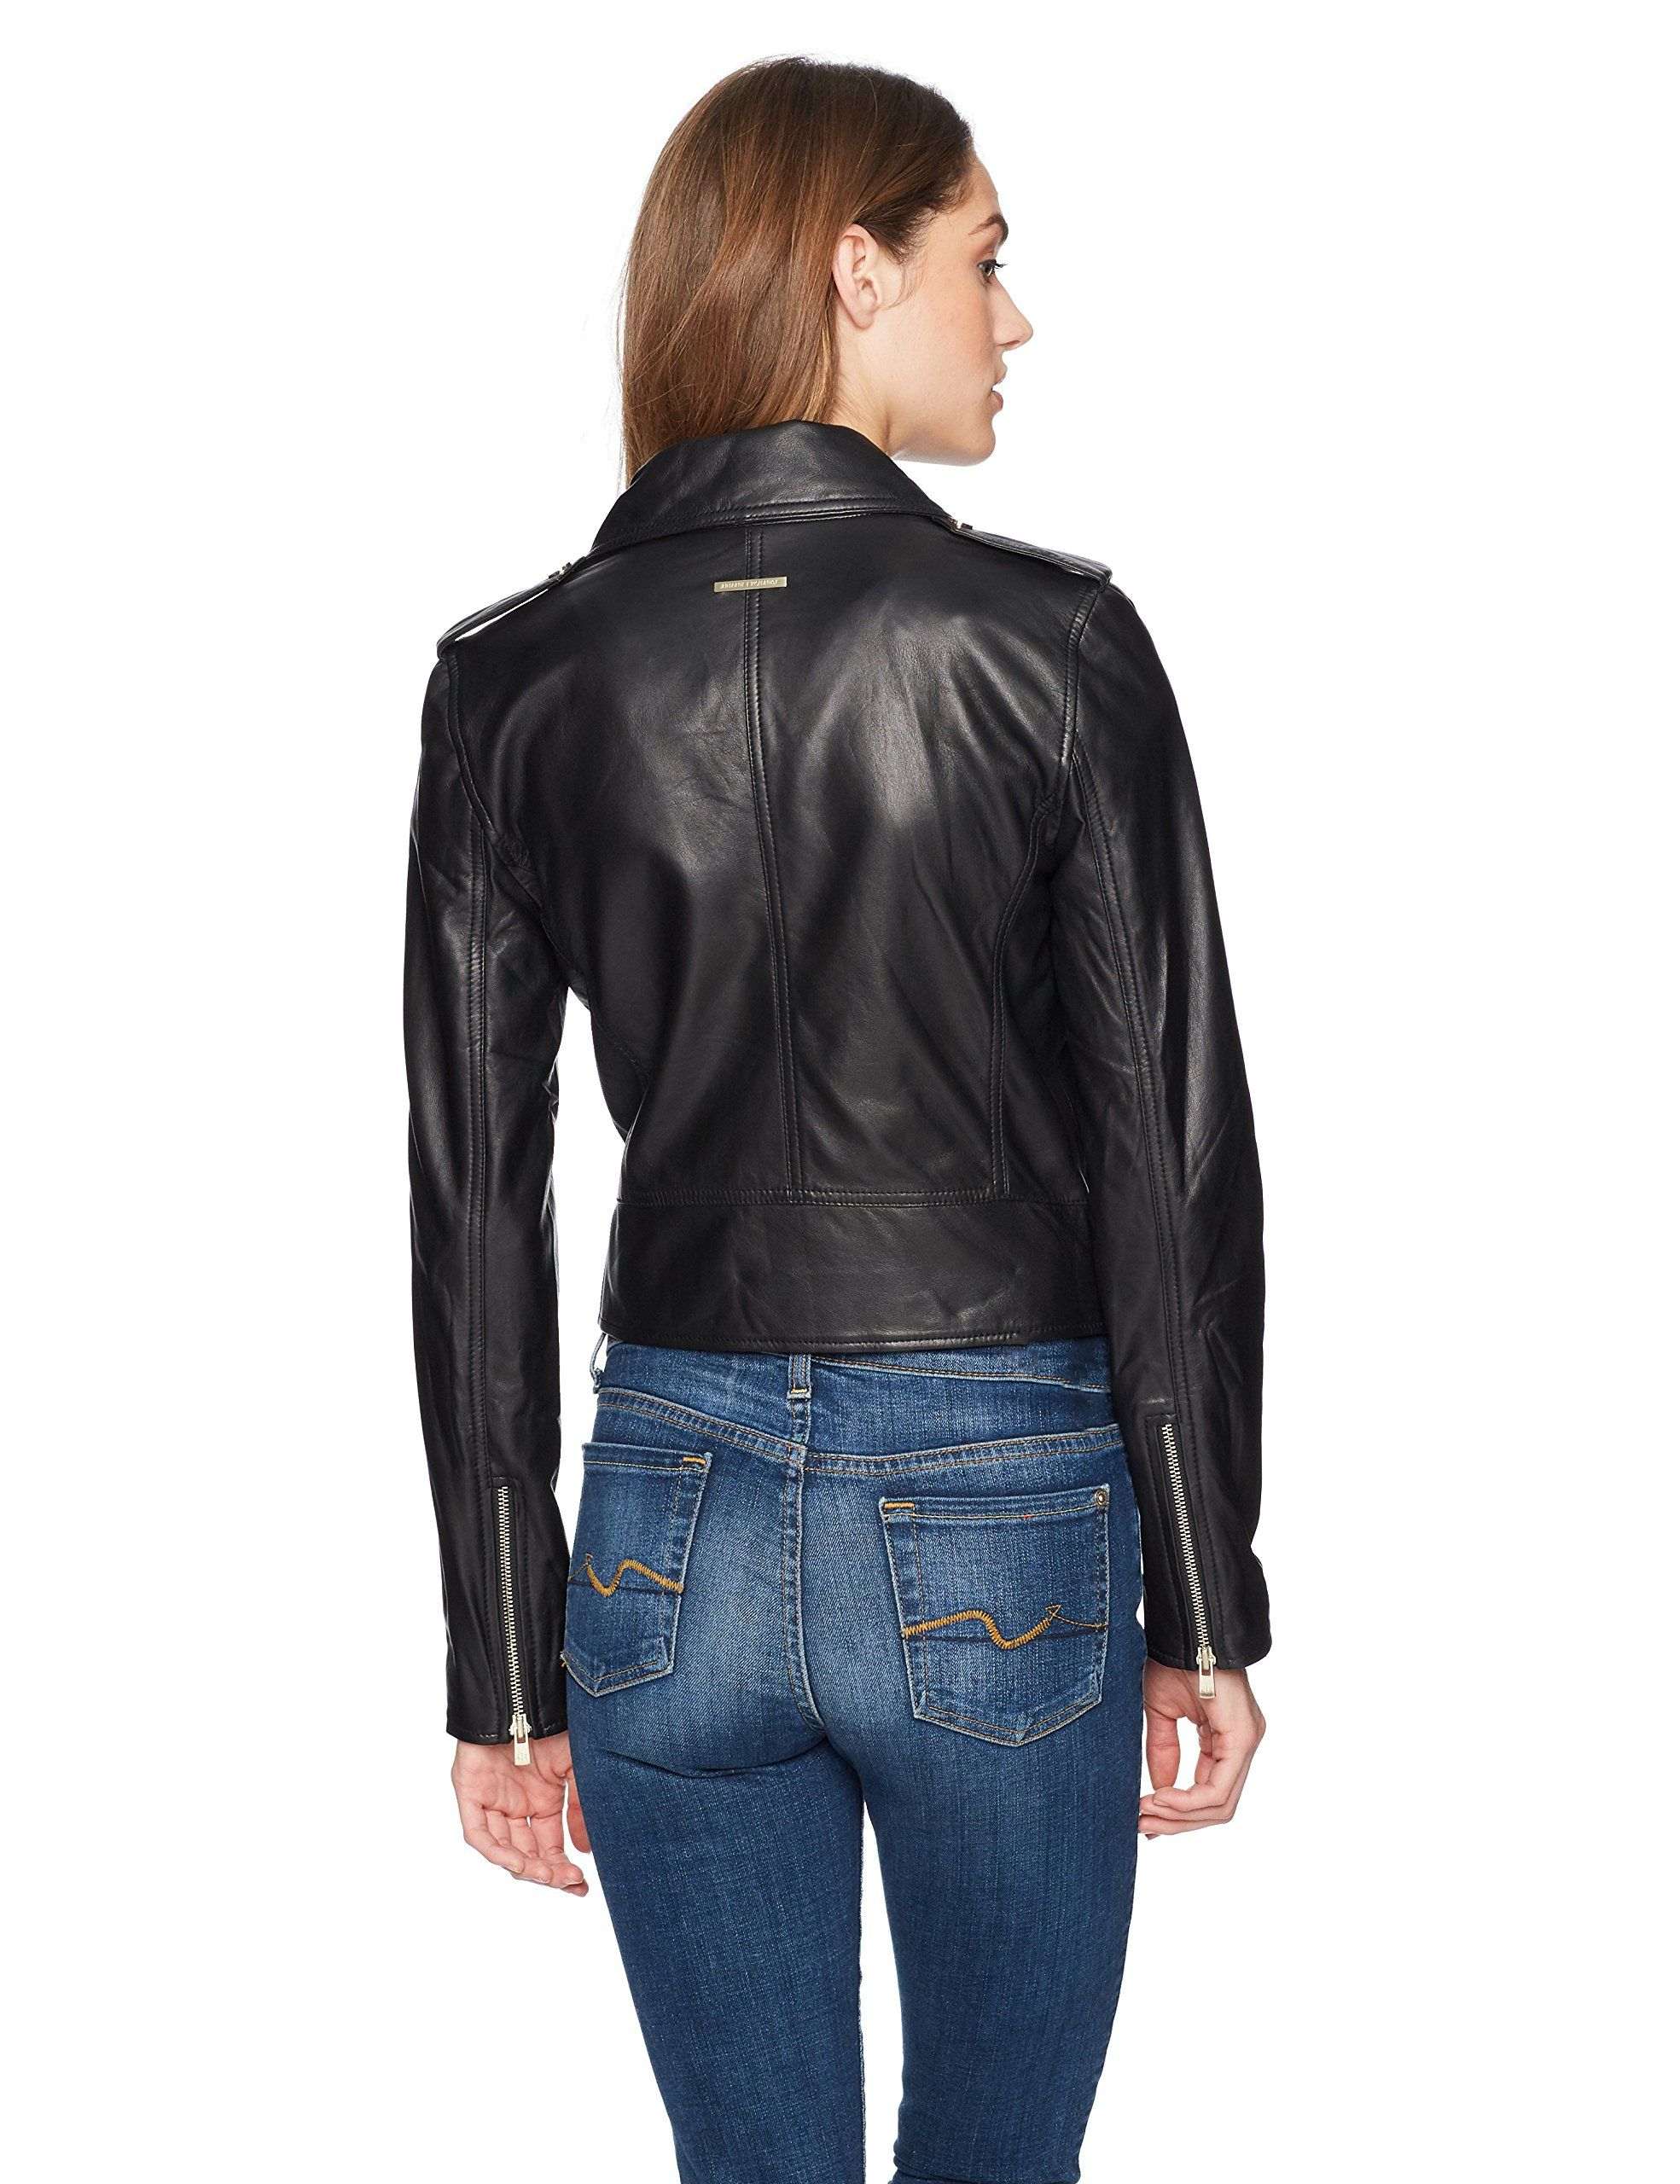 AX Armani Exchange Womens Real Leather Moto Jacket Black M